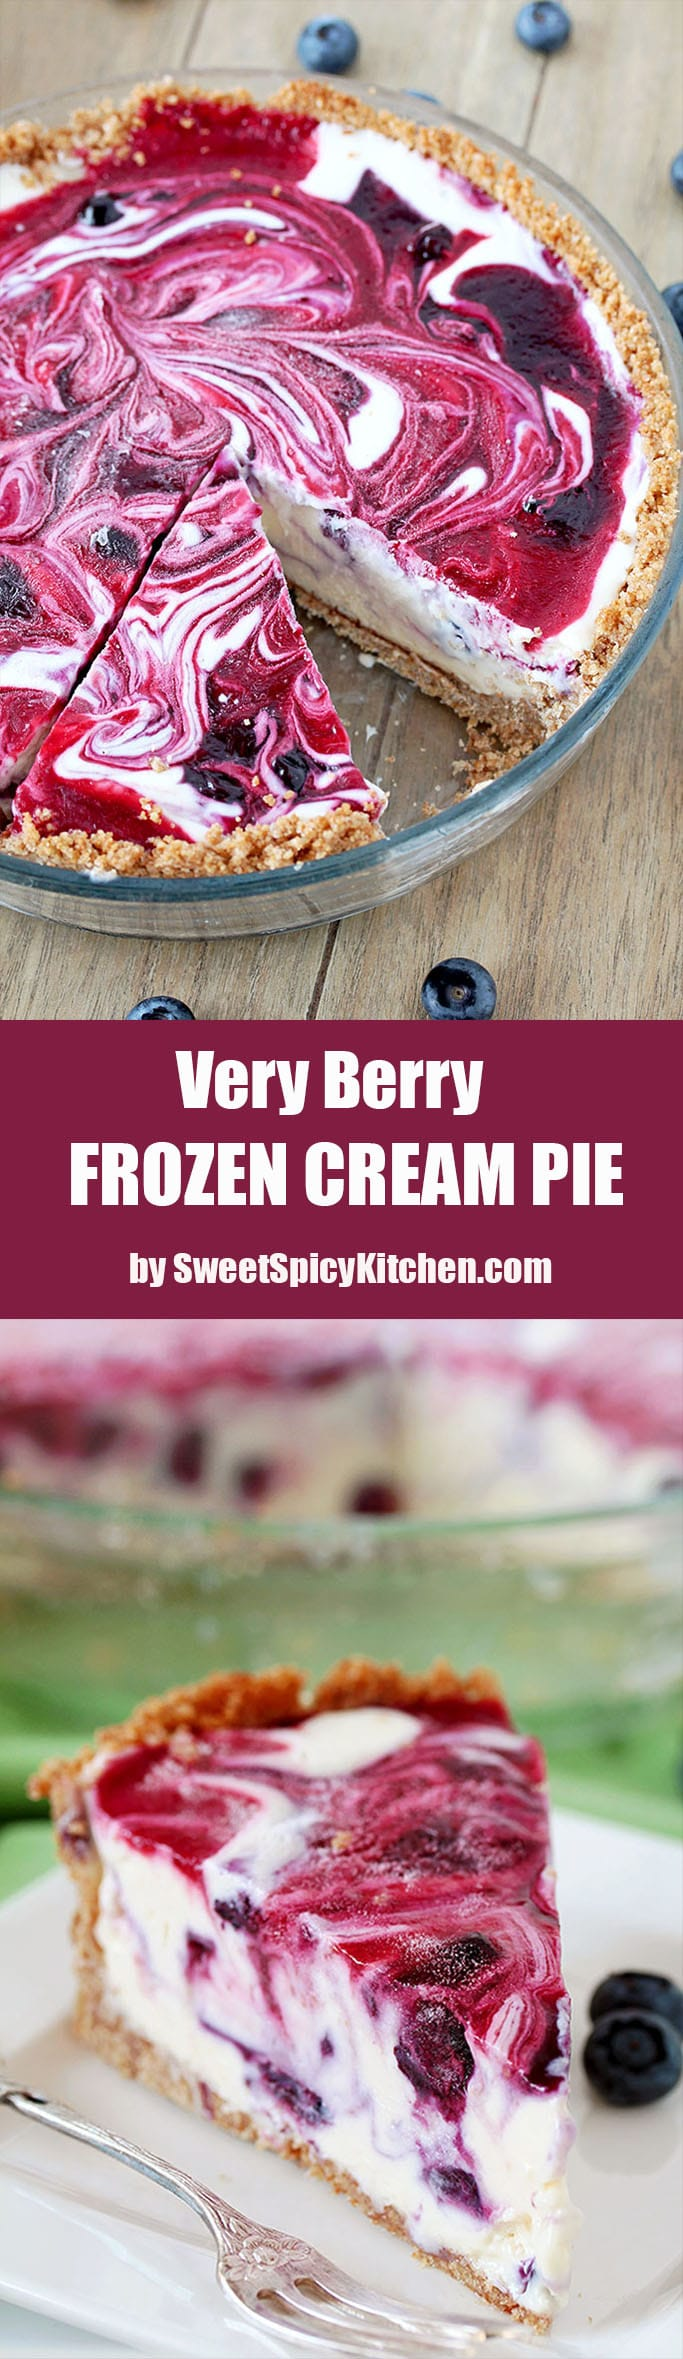 Very Berry Frozen Cream Pie is a dessert with fresh season blueberries and raspberries, just perfect refreshment for hot summer days. If you like ice cream, especially fruit, you will love this pie. This is one of my favorite summer desserts. Graham cracker pie crust, frozen creamy filling, swirls with homemade blueberry and raspberry sauce… Pure perfection, if you ask me.